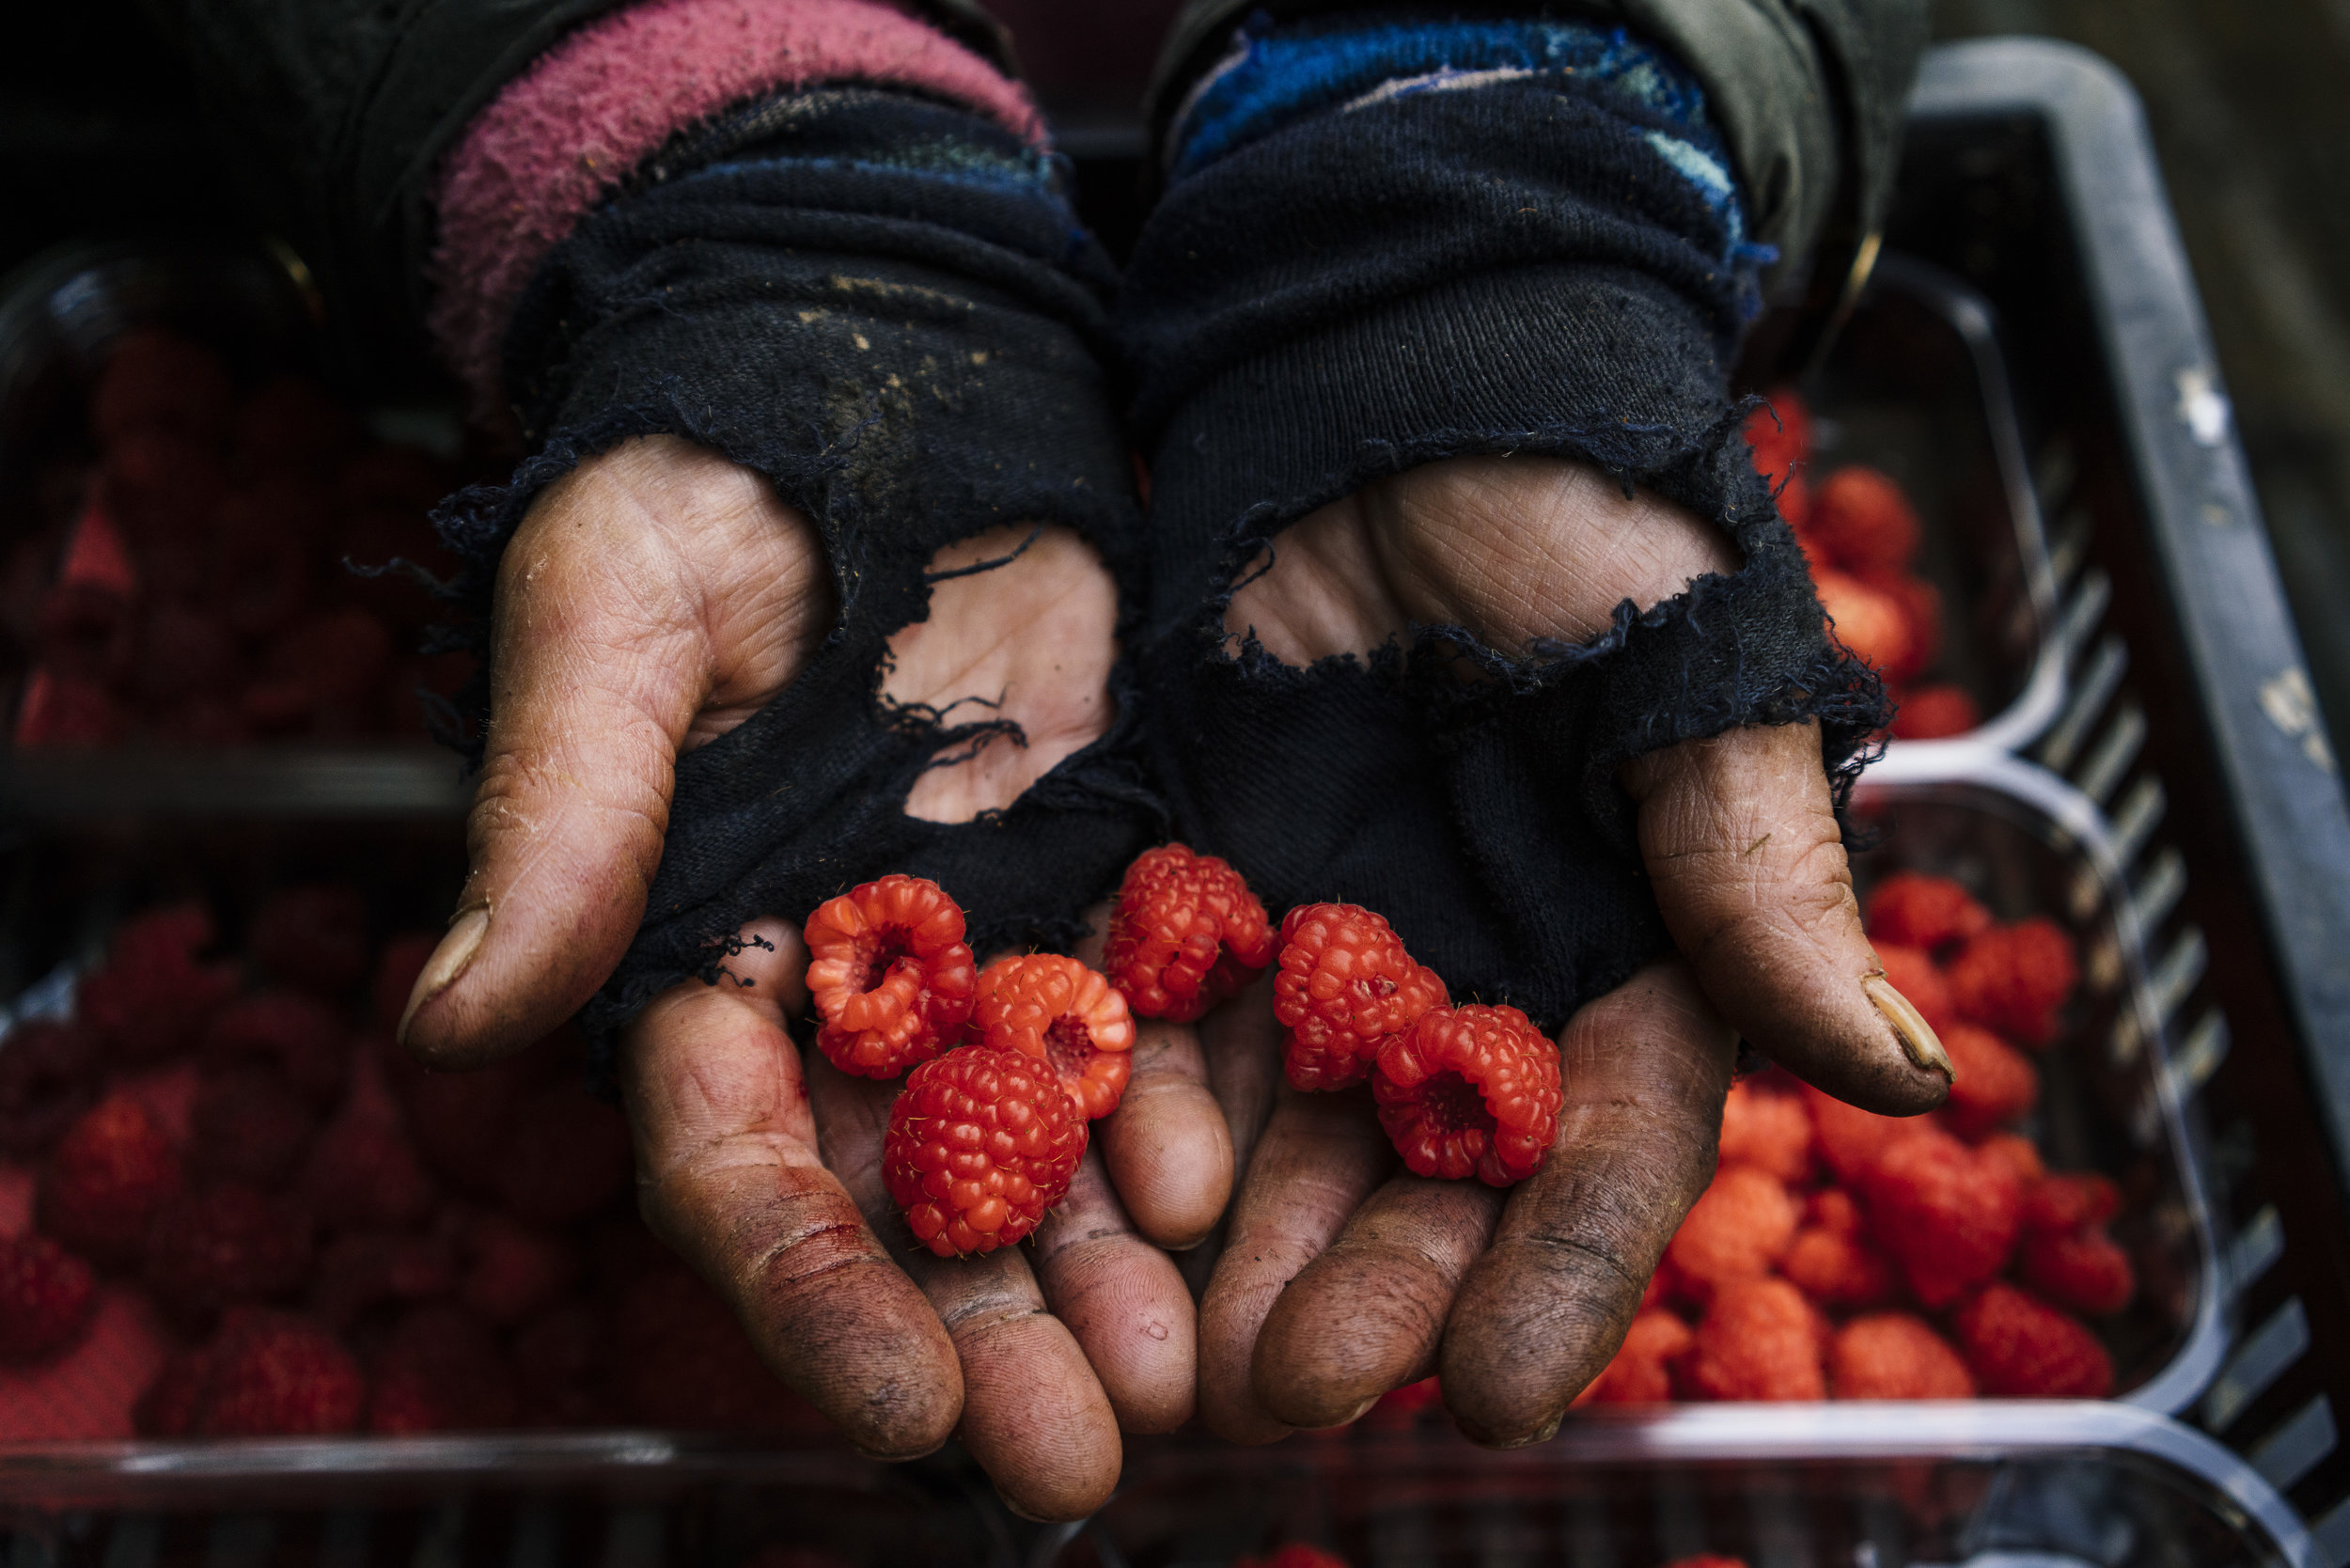 A Bulgarian fruit picker holds raspberries in her hand in a tunnel at Oakdene Farm, a fruit and vegetable farm owned by W.B. Chambers & Son in Langley, Kent, England, Thursday, Nov. 16, 2017. (David Azia for NBC News)